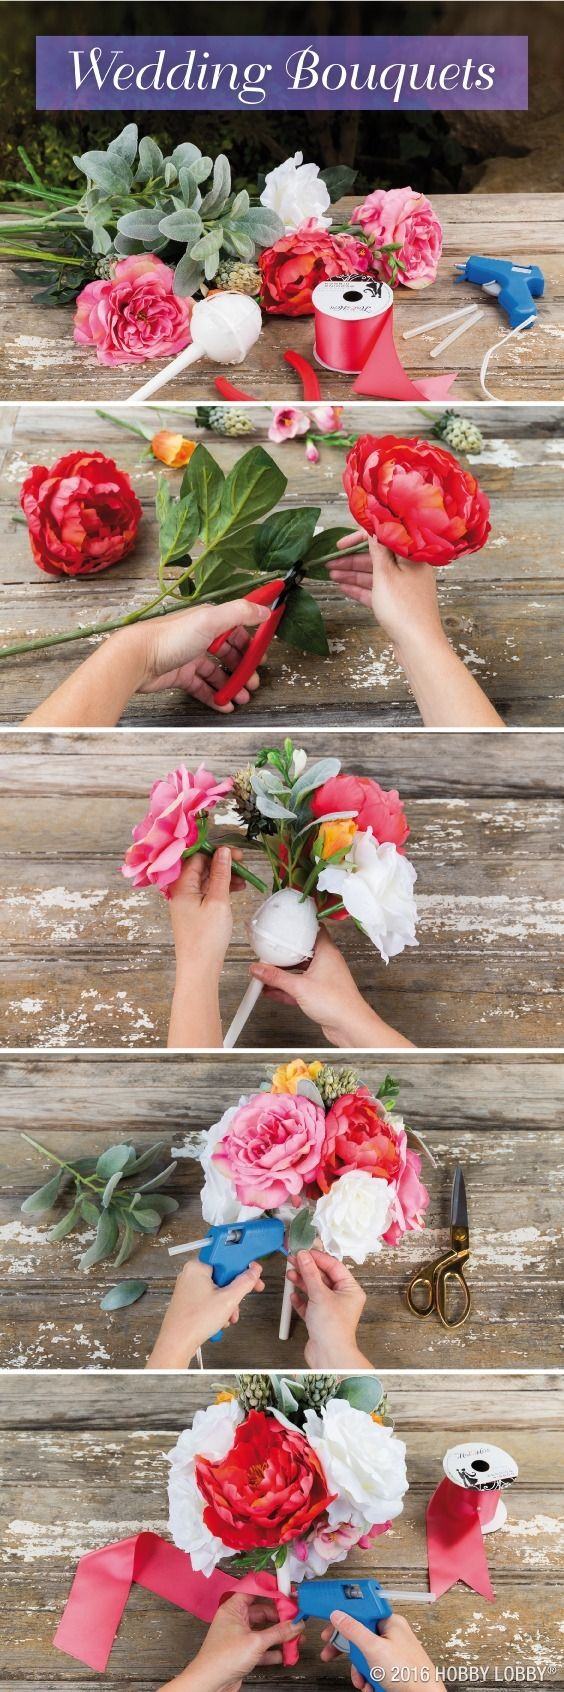 Beautiful arrangements aren't exclusive to your local florist. To create the perfect DIY bouquet: 1) Trim stems to desired length. 2) Push stems into handle's foam center, perfecting flower spacing and placement. 3) Hot glue to secure stems back in pace. 4) Use leftover leaves to hide the base. 5) Wrap ribbon around handle for a finishing touch.